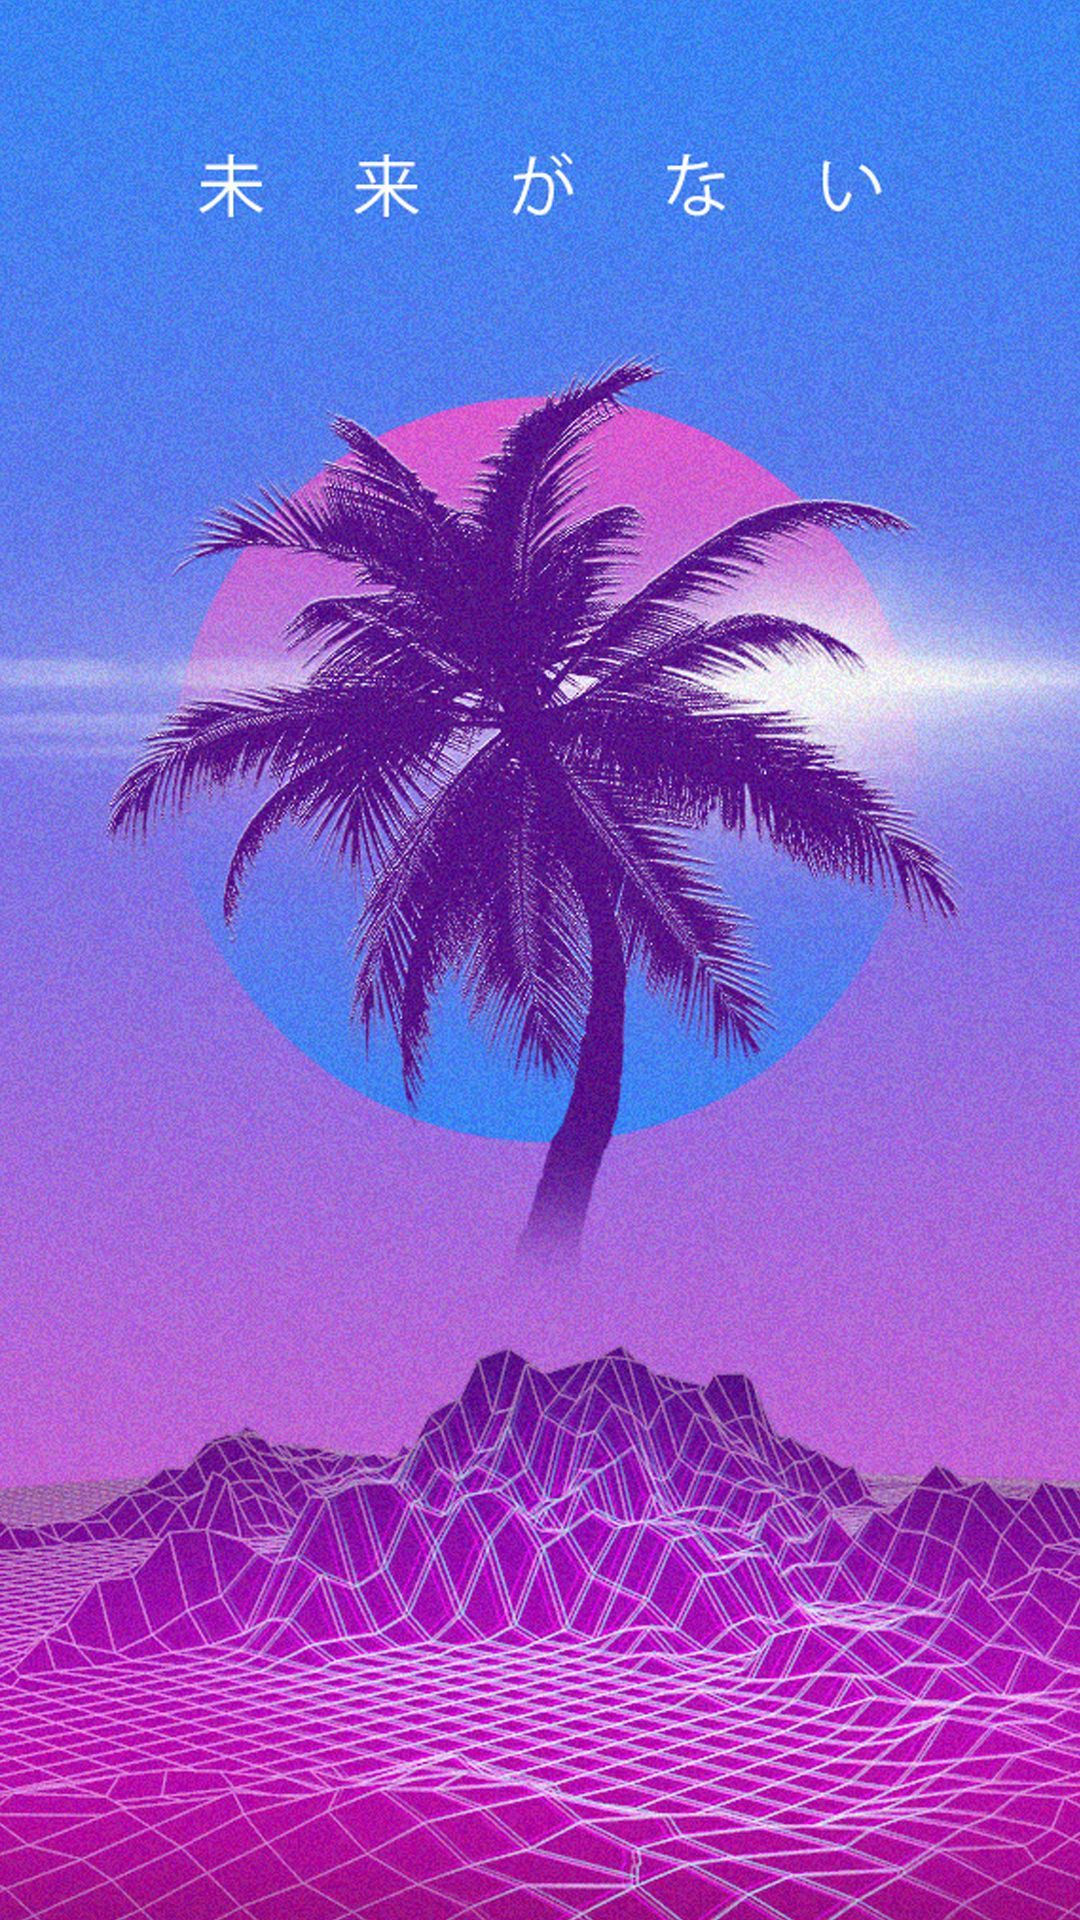 Vhs Vaporwave Iphone Wallpapers Top Free Vhs Vaporwave Iphone Backgrounds Wallpaperaccess